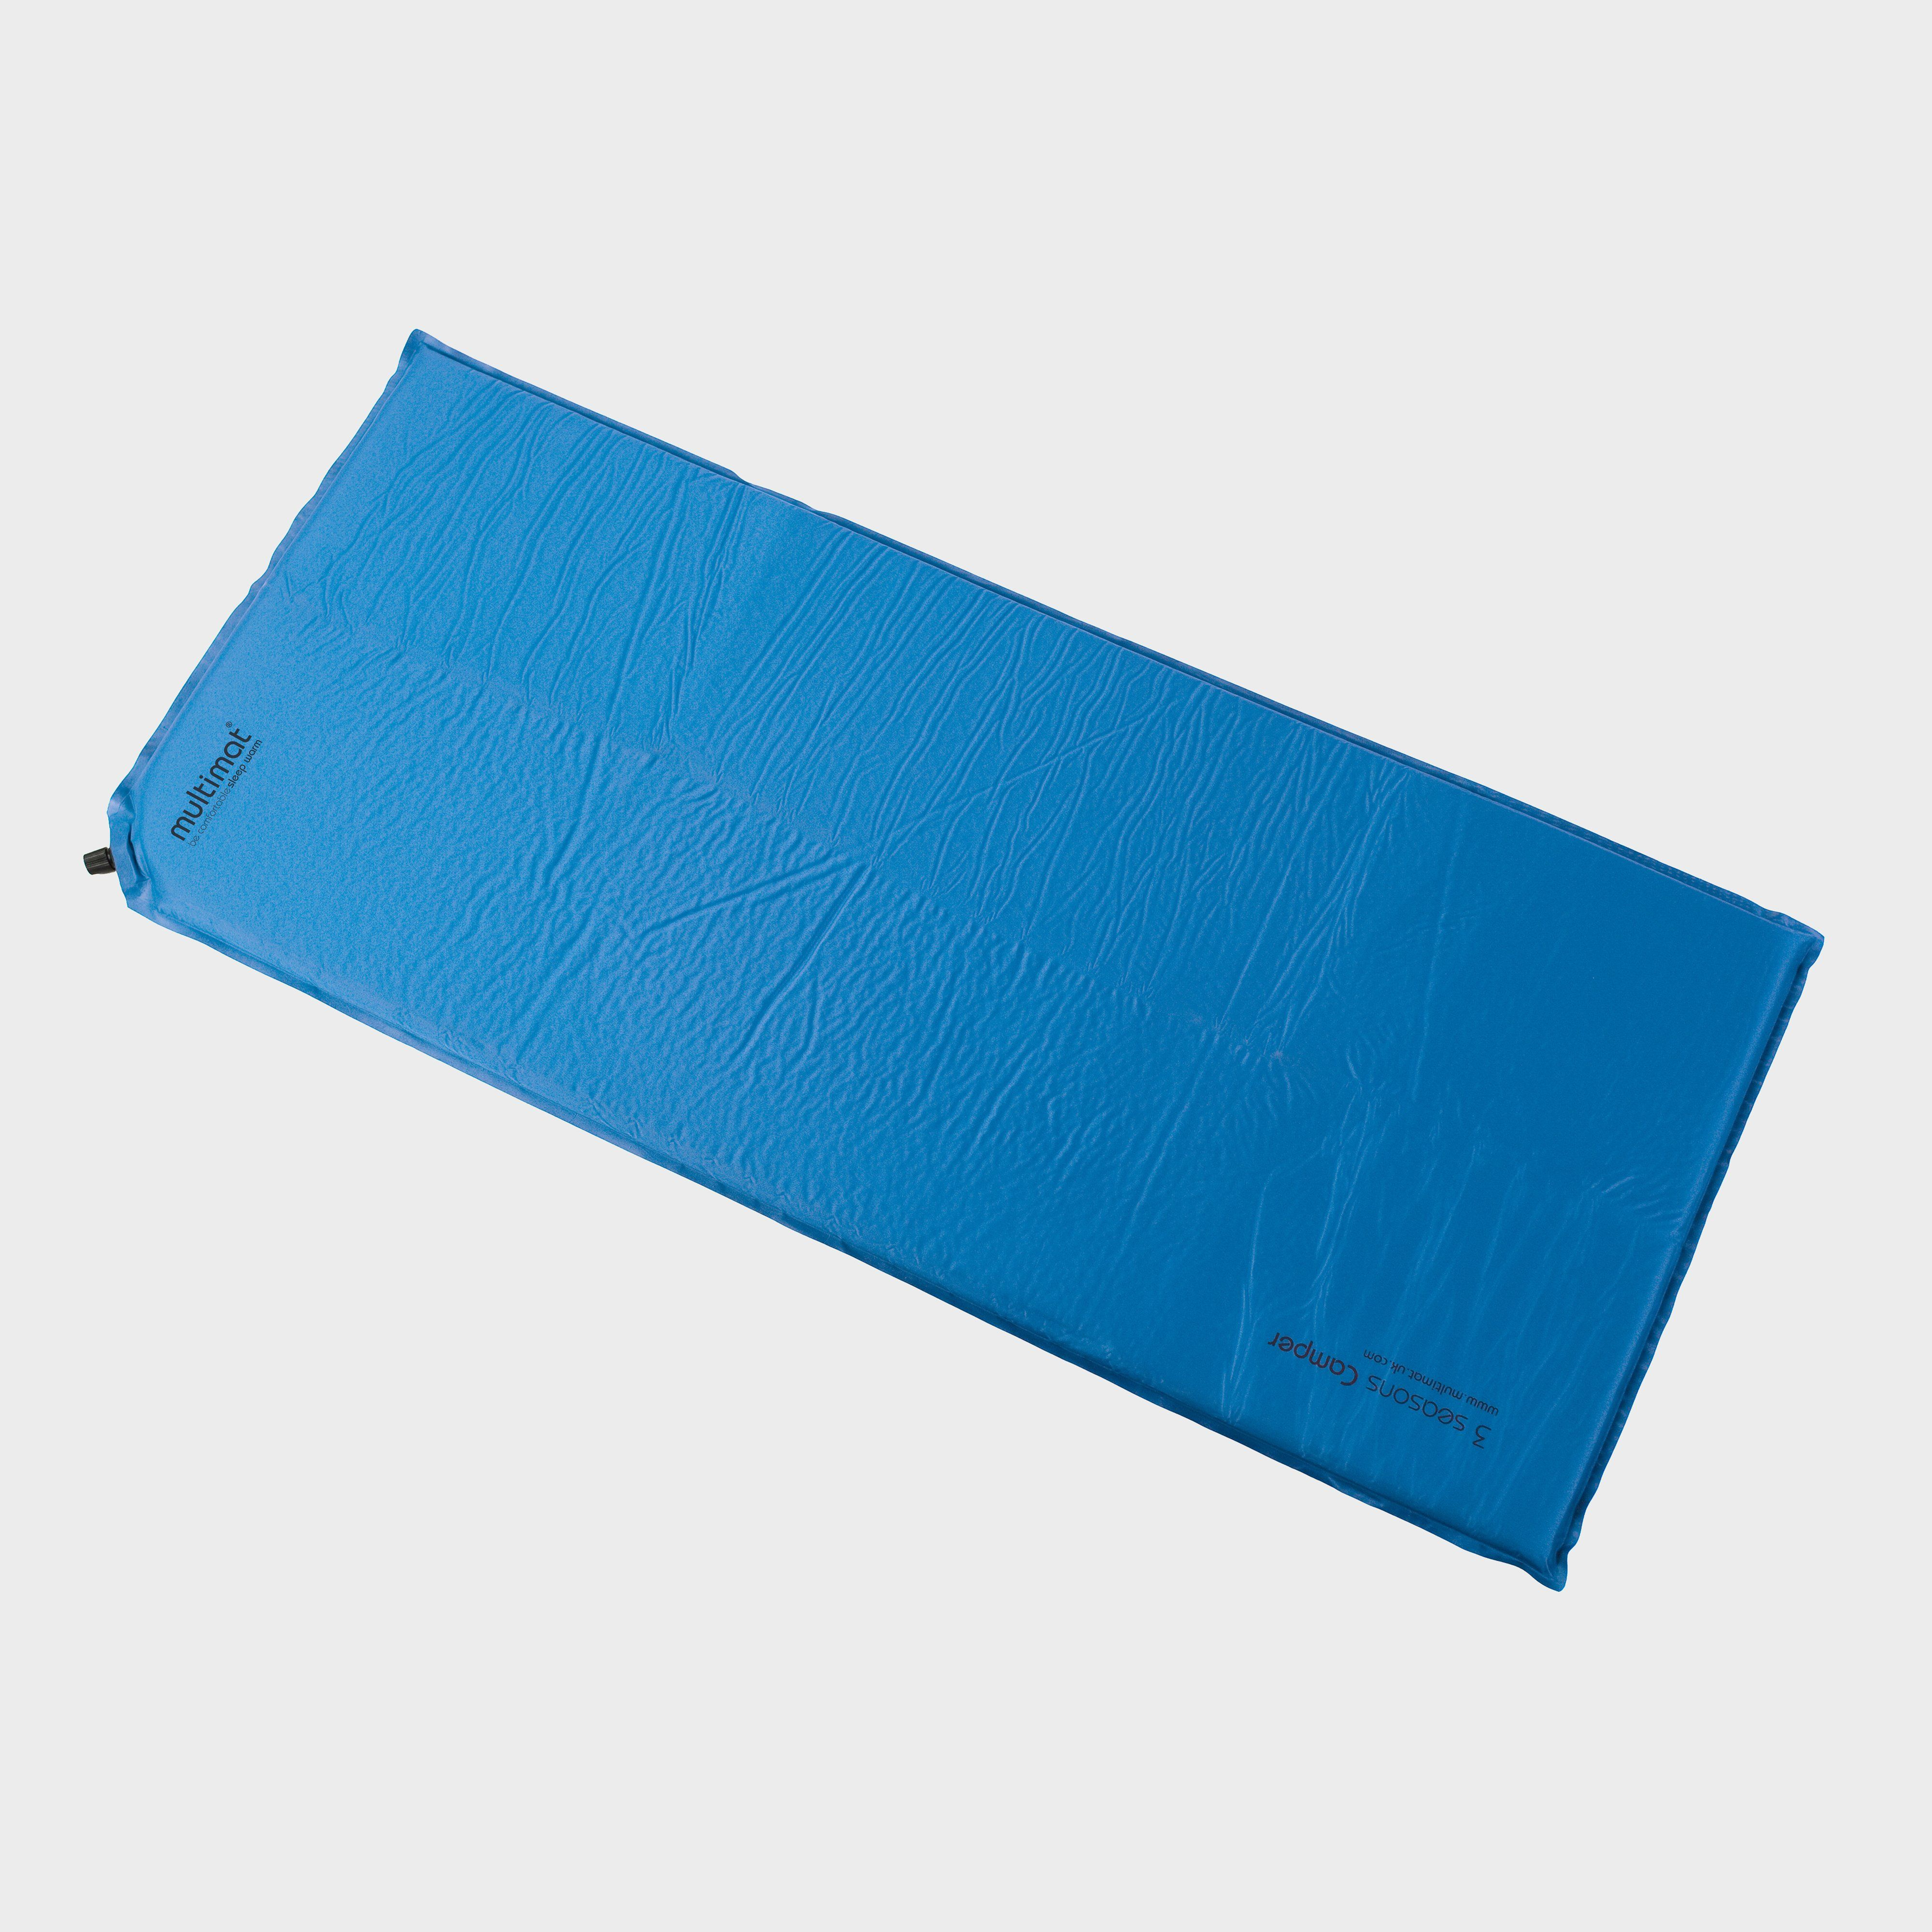 MULTIMAT Camper Compact 25 Self Inflating Mat